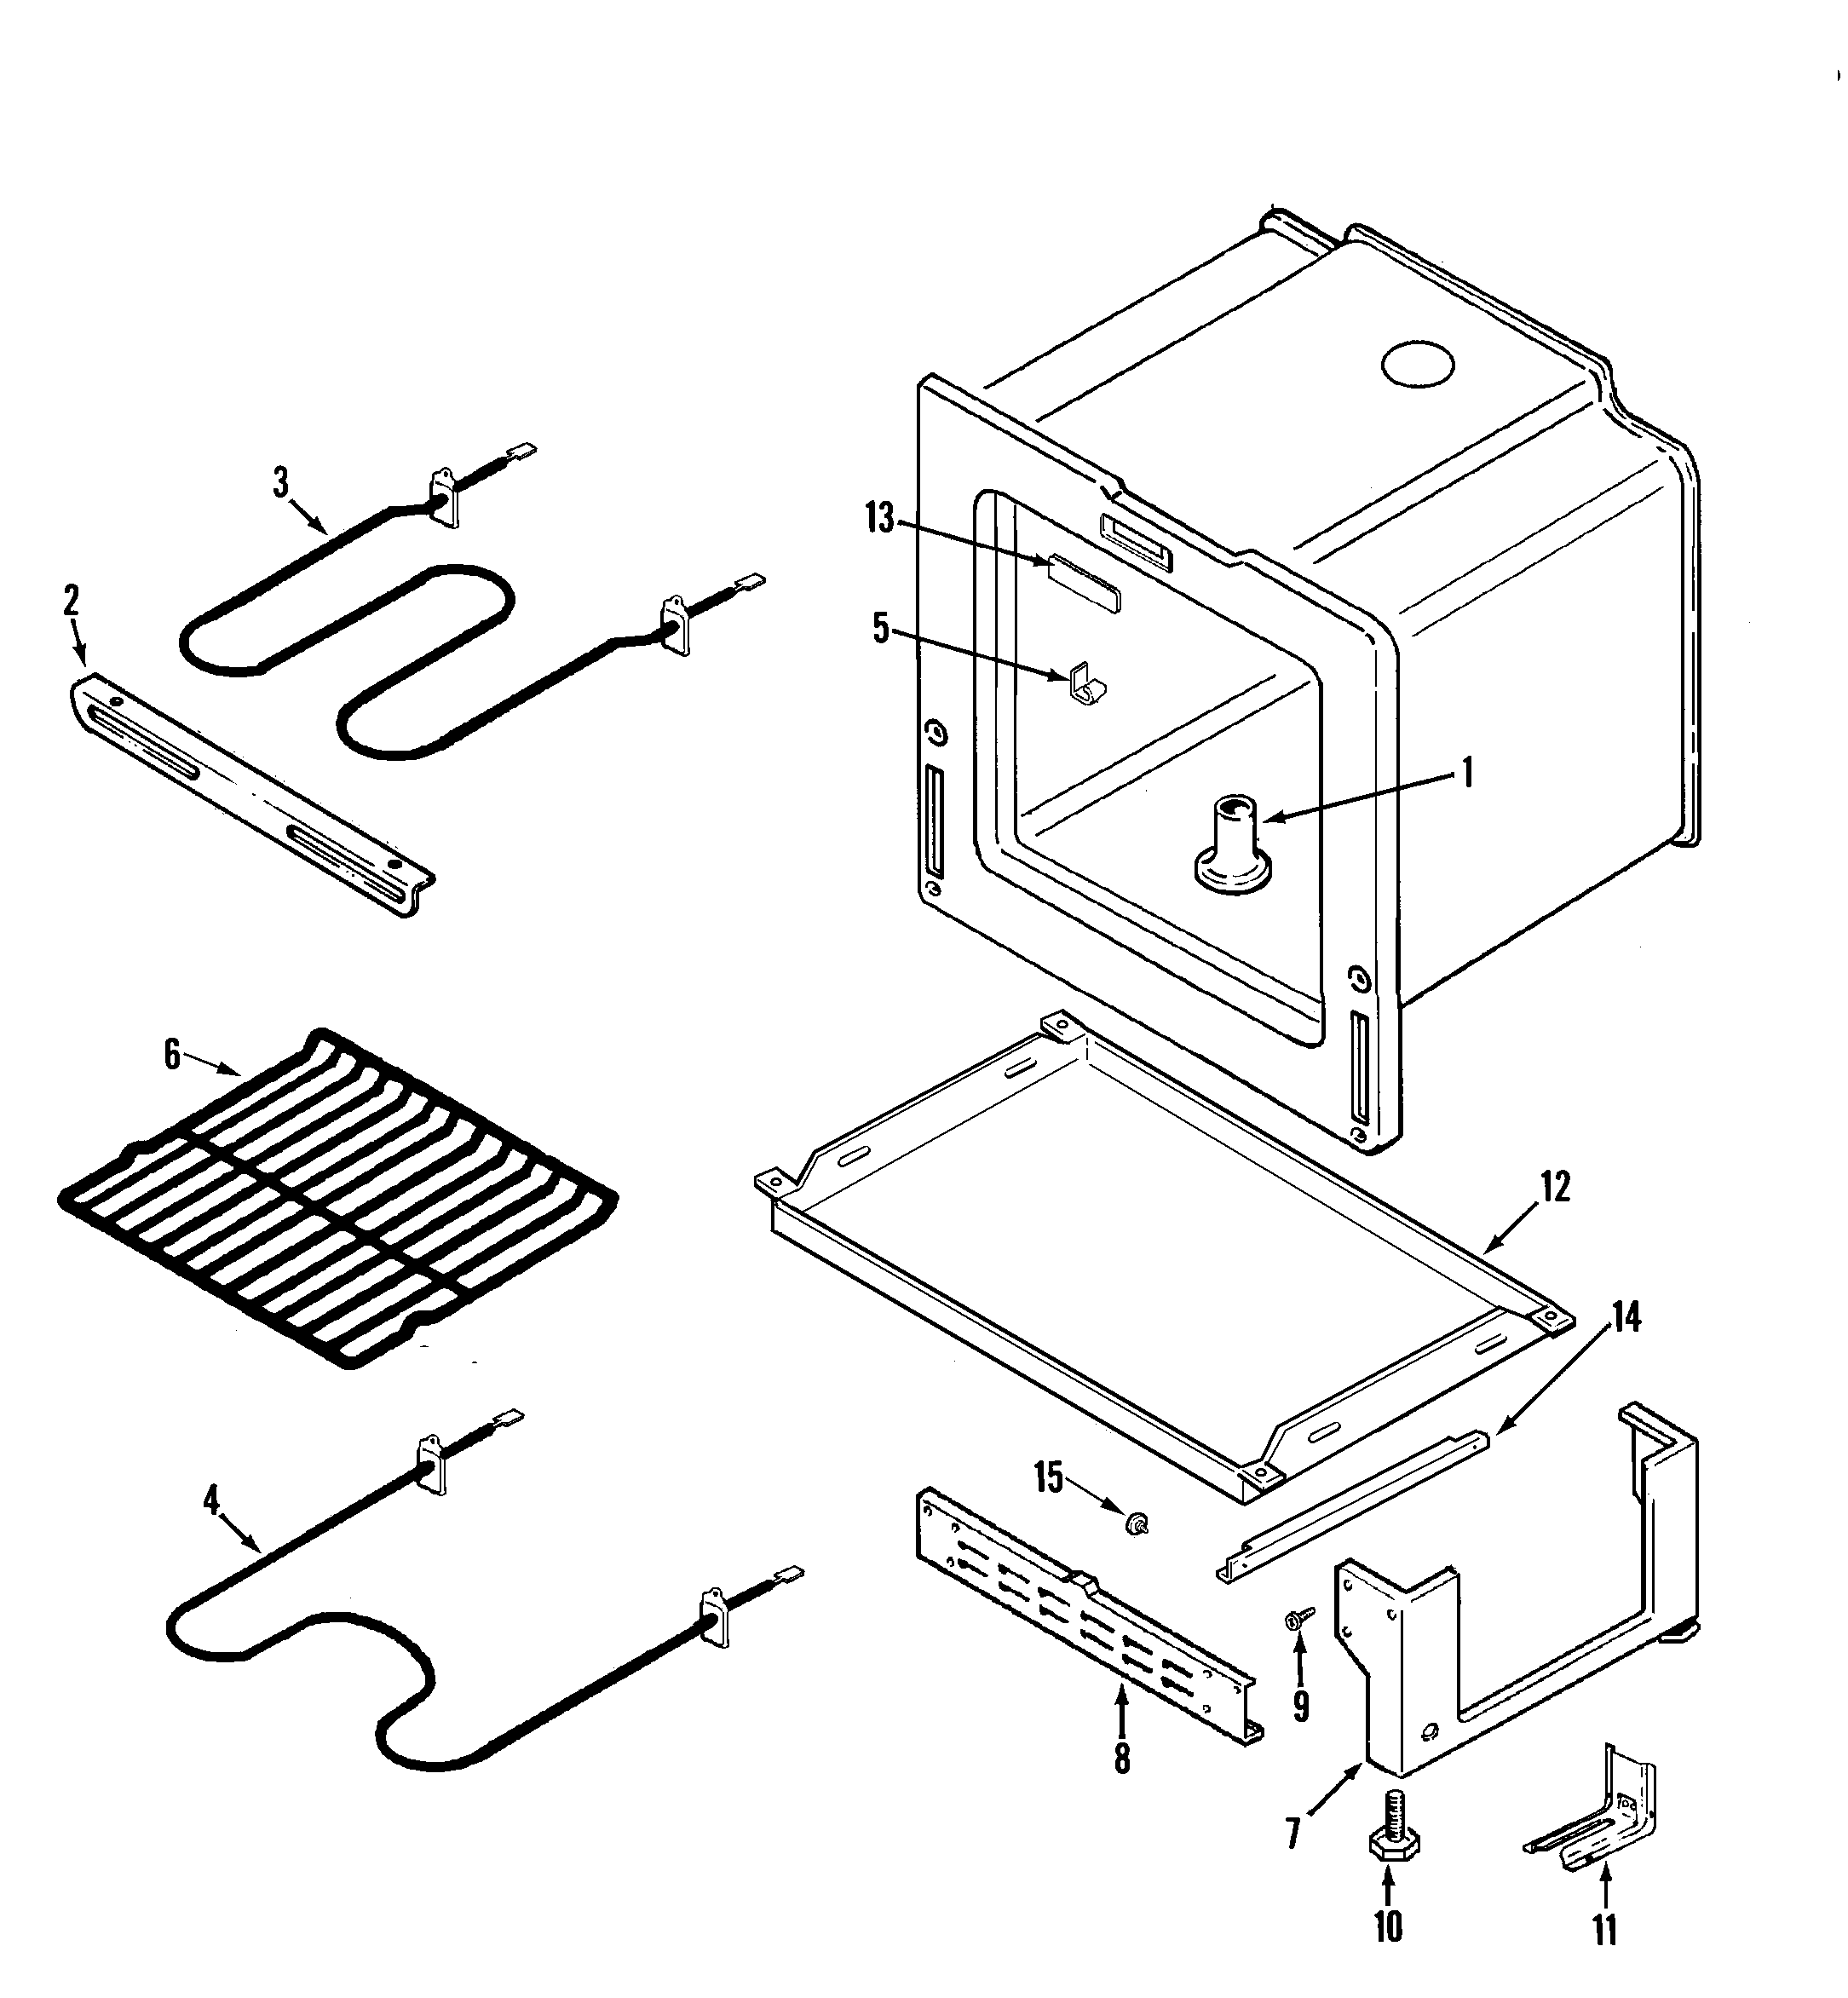 OVEN/BASE Diagram & Parts List for Model cer1140aaw Magic